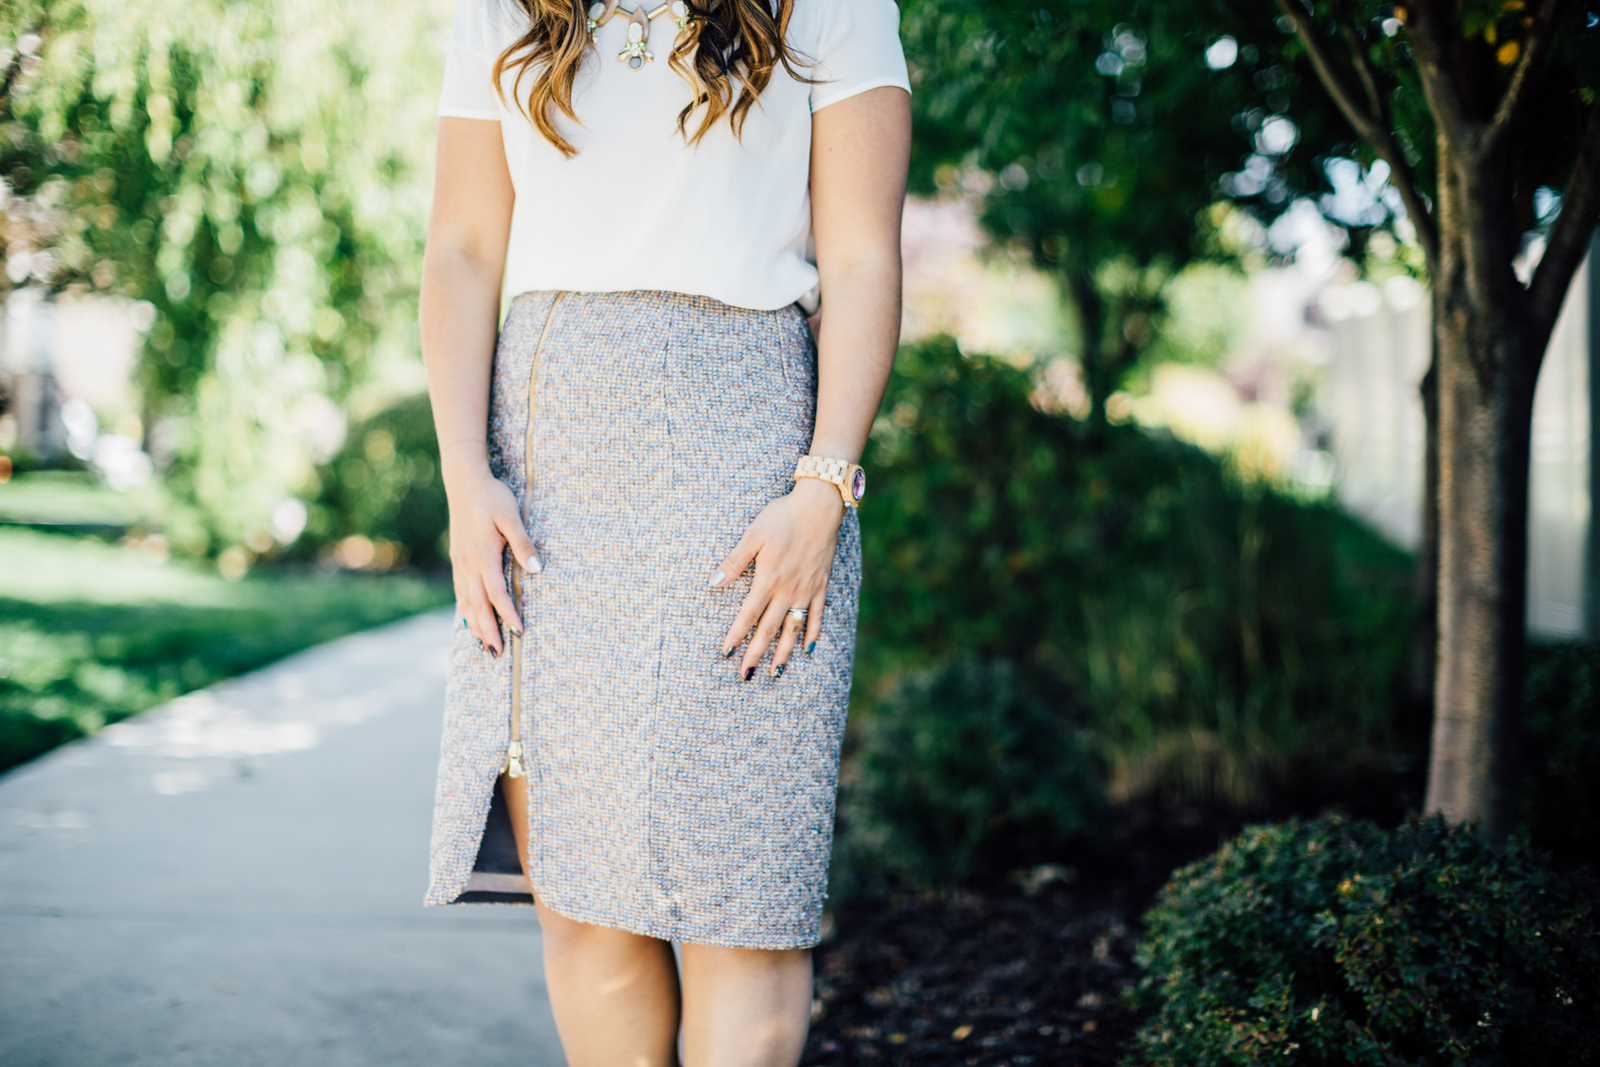 Fashion blogger wearing J.Crew tweed skirt